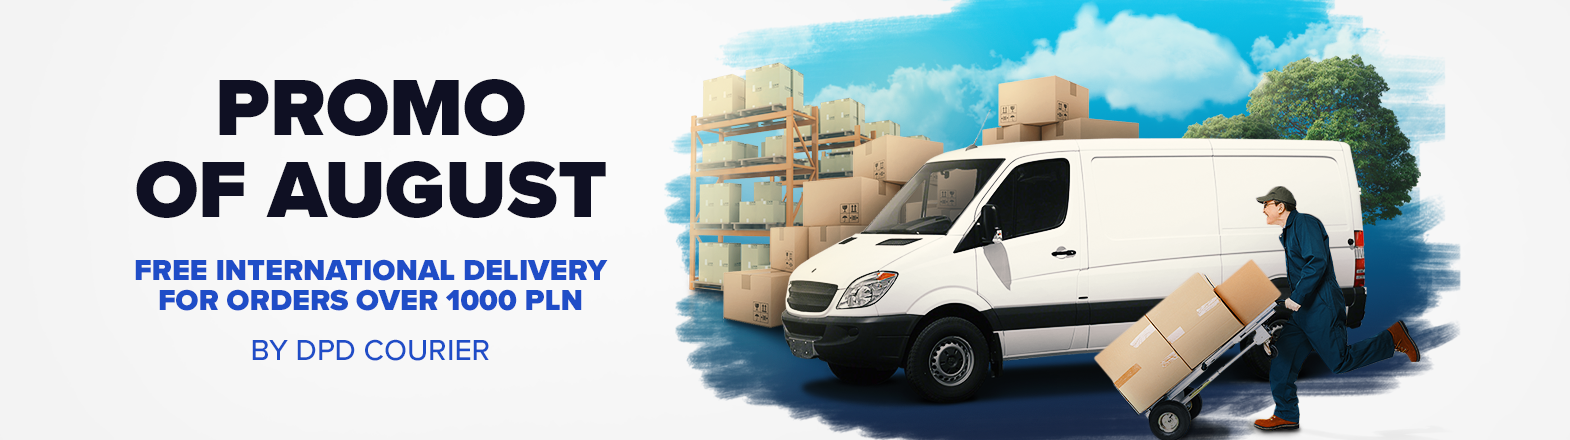 Free international delivery for orders over 1000 PLN by DPD courier